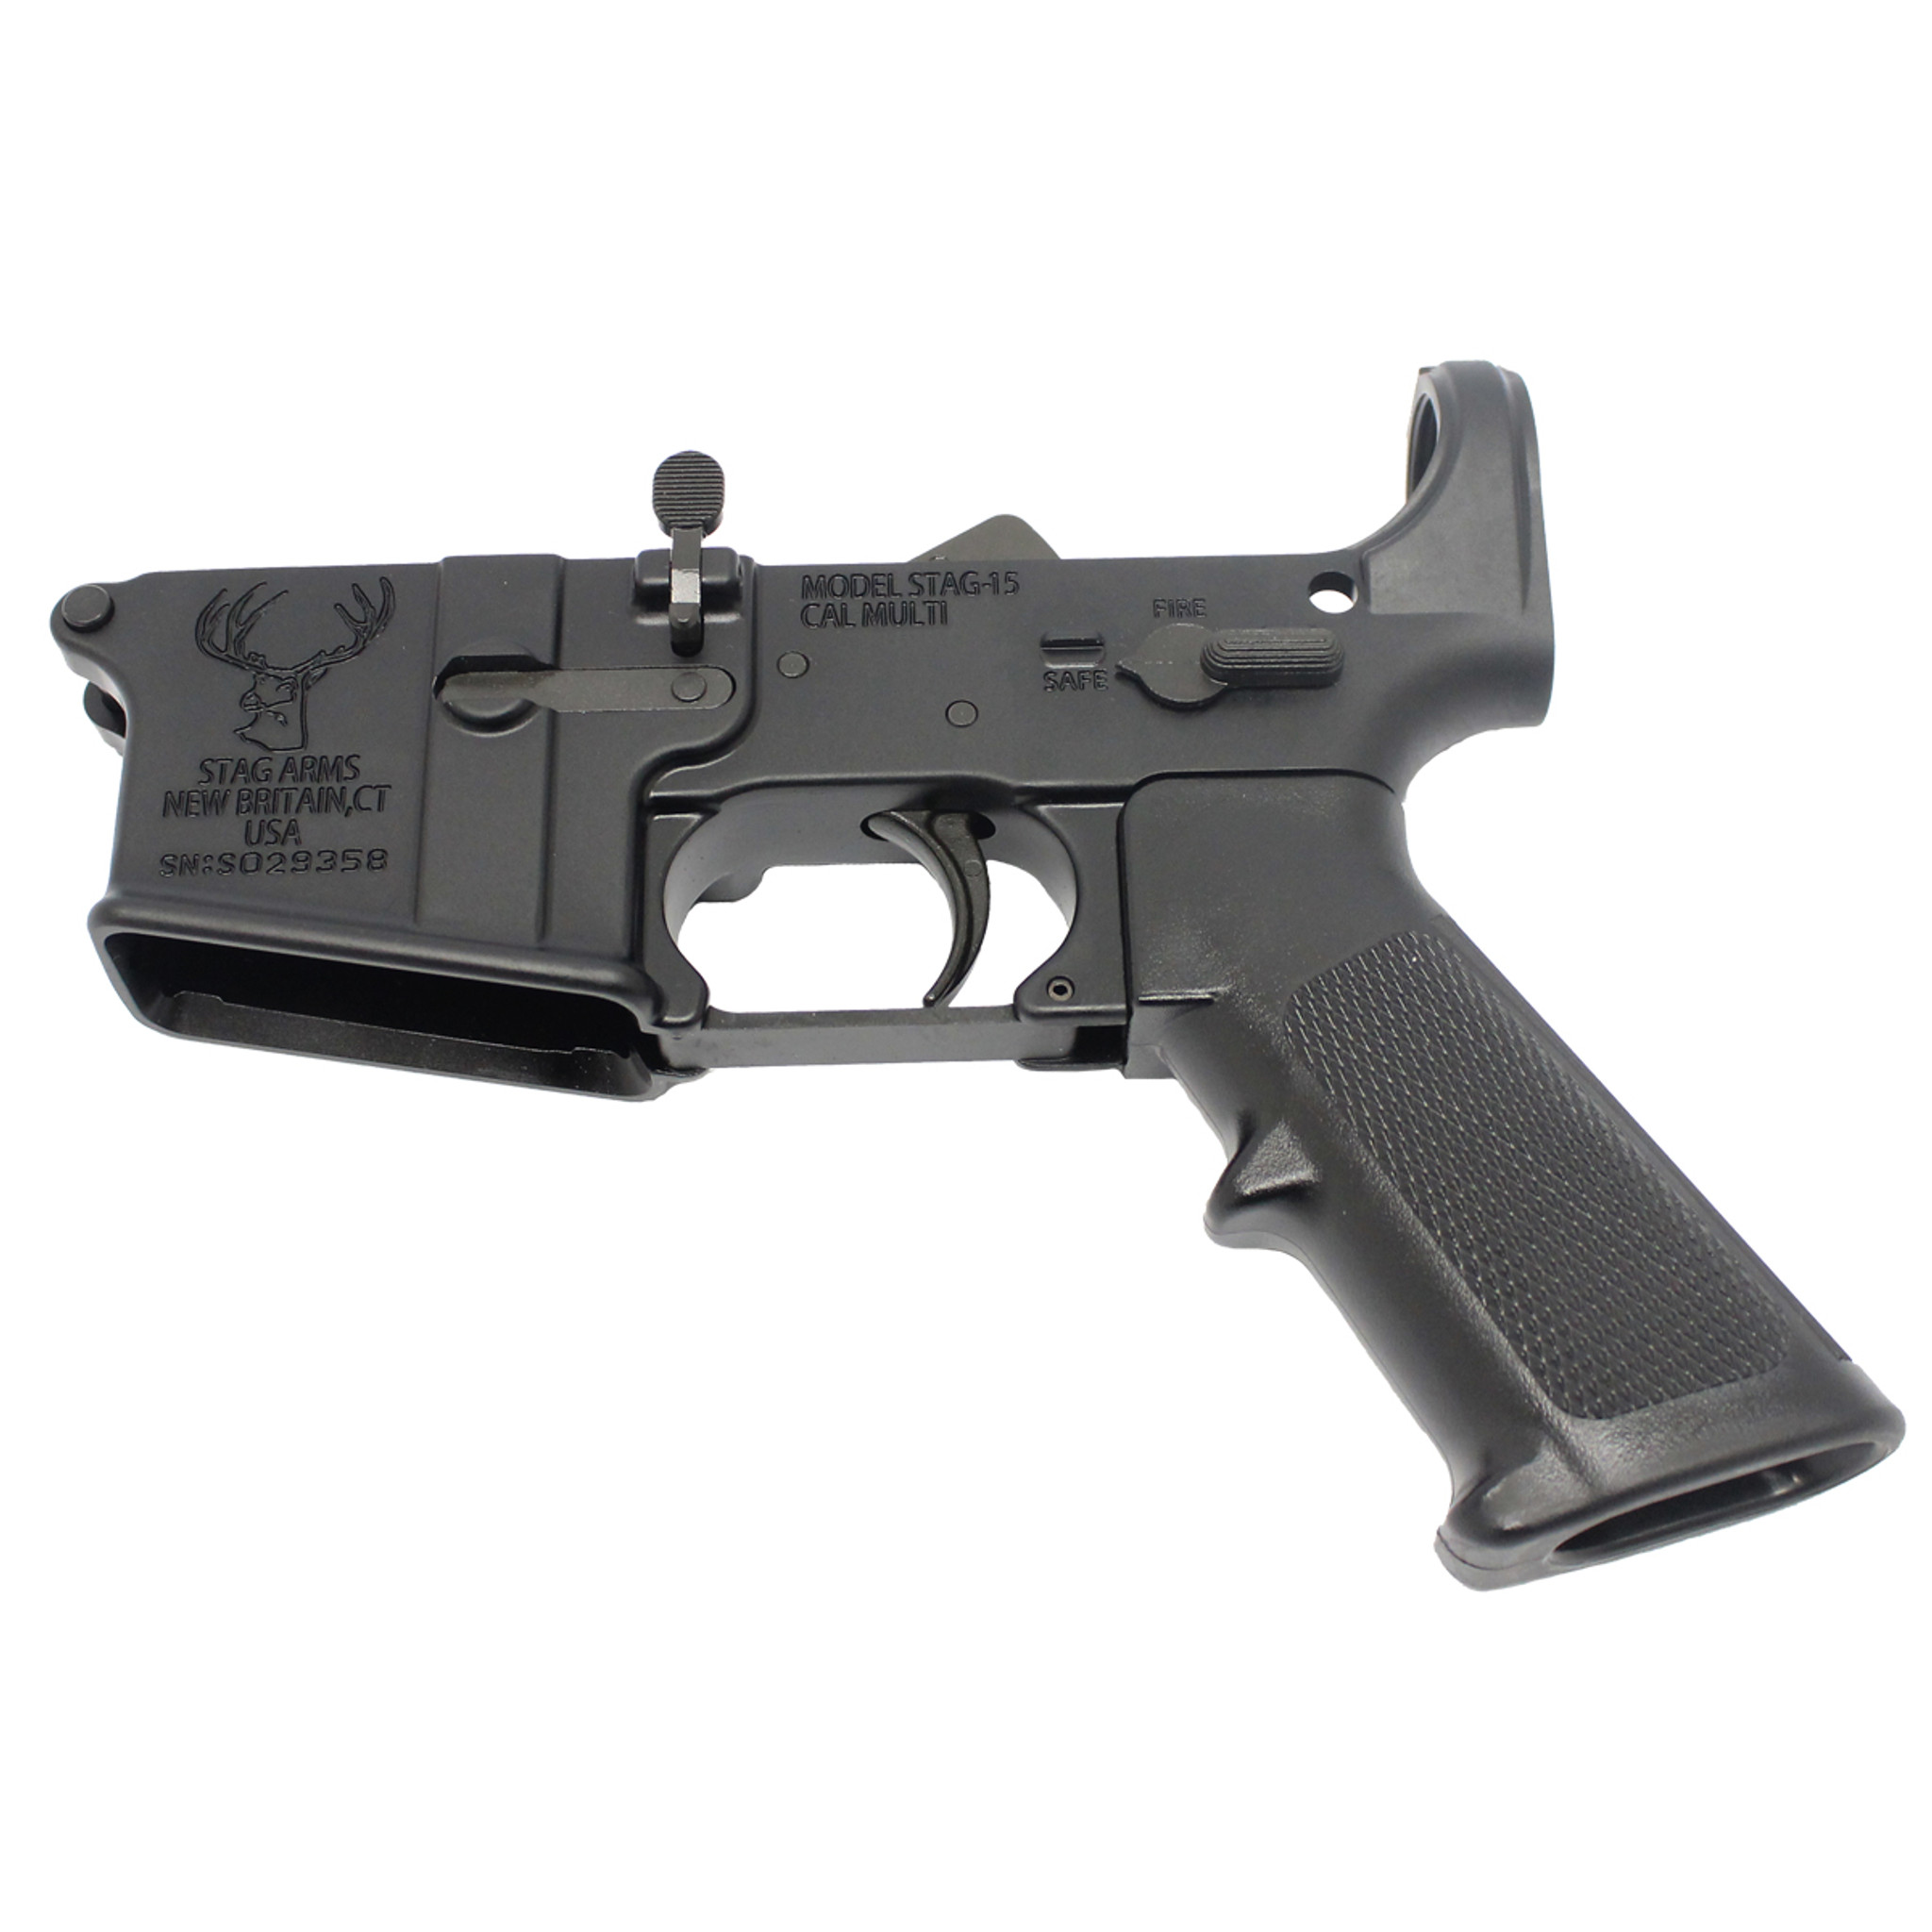 AR15 Lower Receiver with Kit Installed